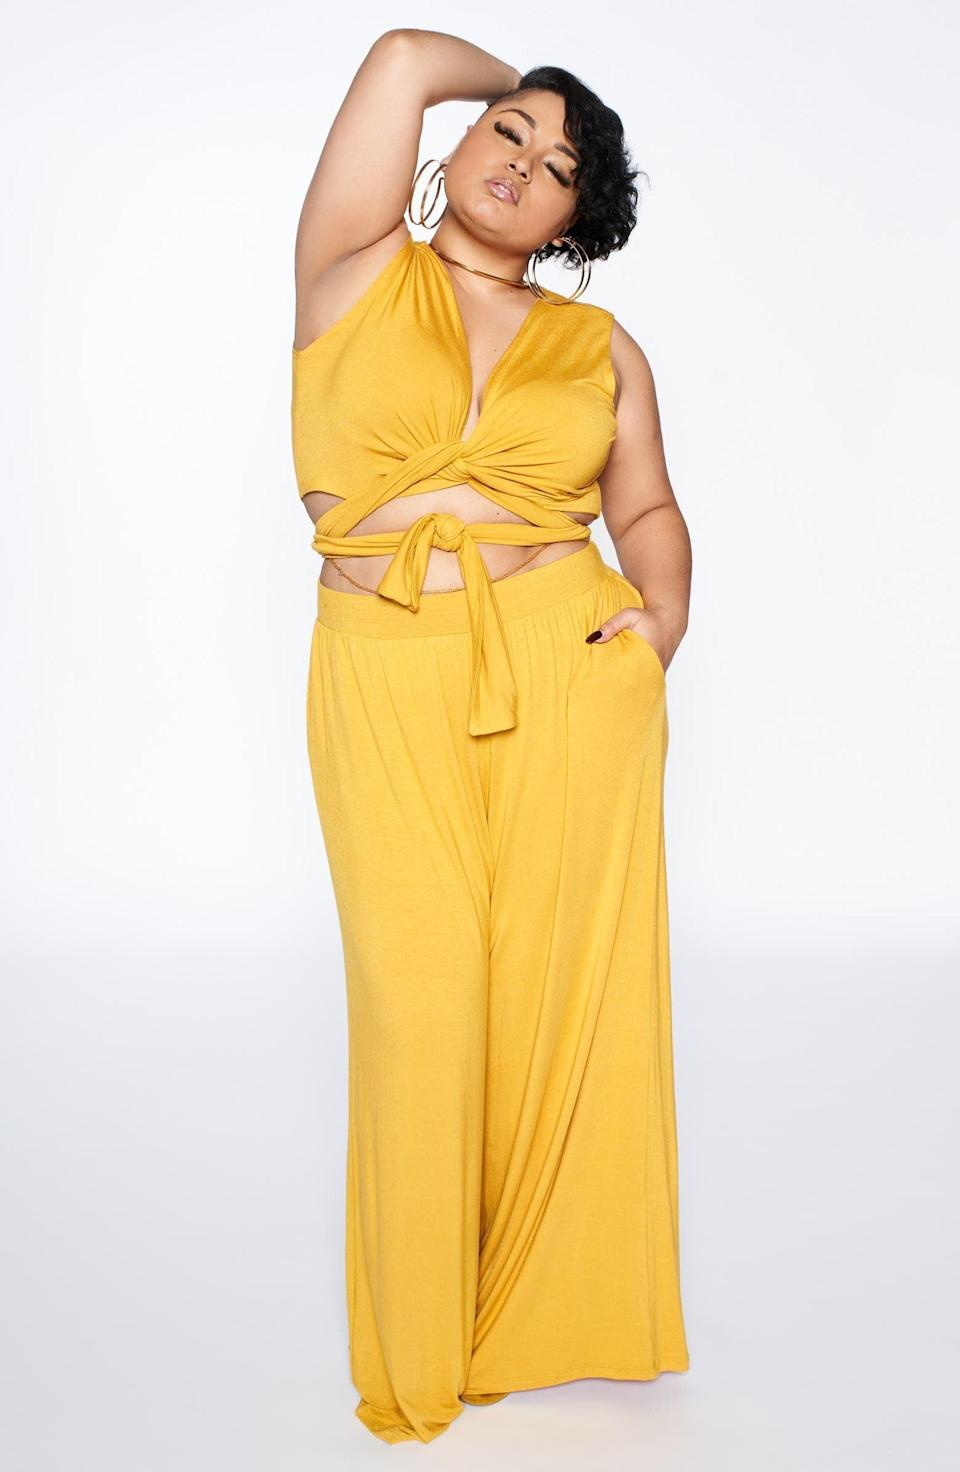 <p>Take this <span>Zellie For She Vacation Convertible Wrap Crop Top</span> ($59 - $69) on your next vacation, and get ready to be the shine wherever you go.</p>